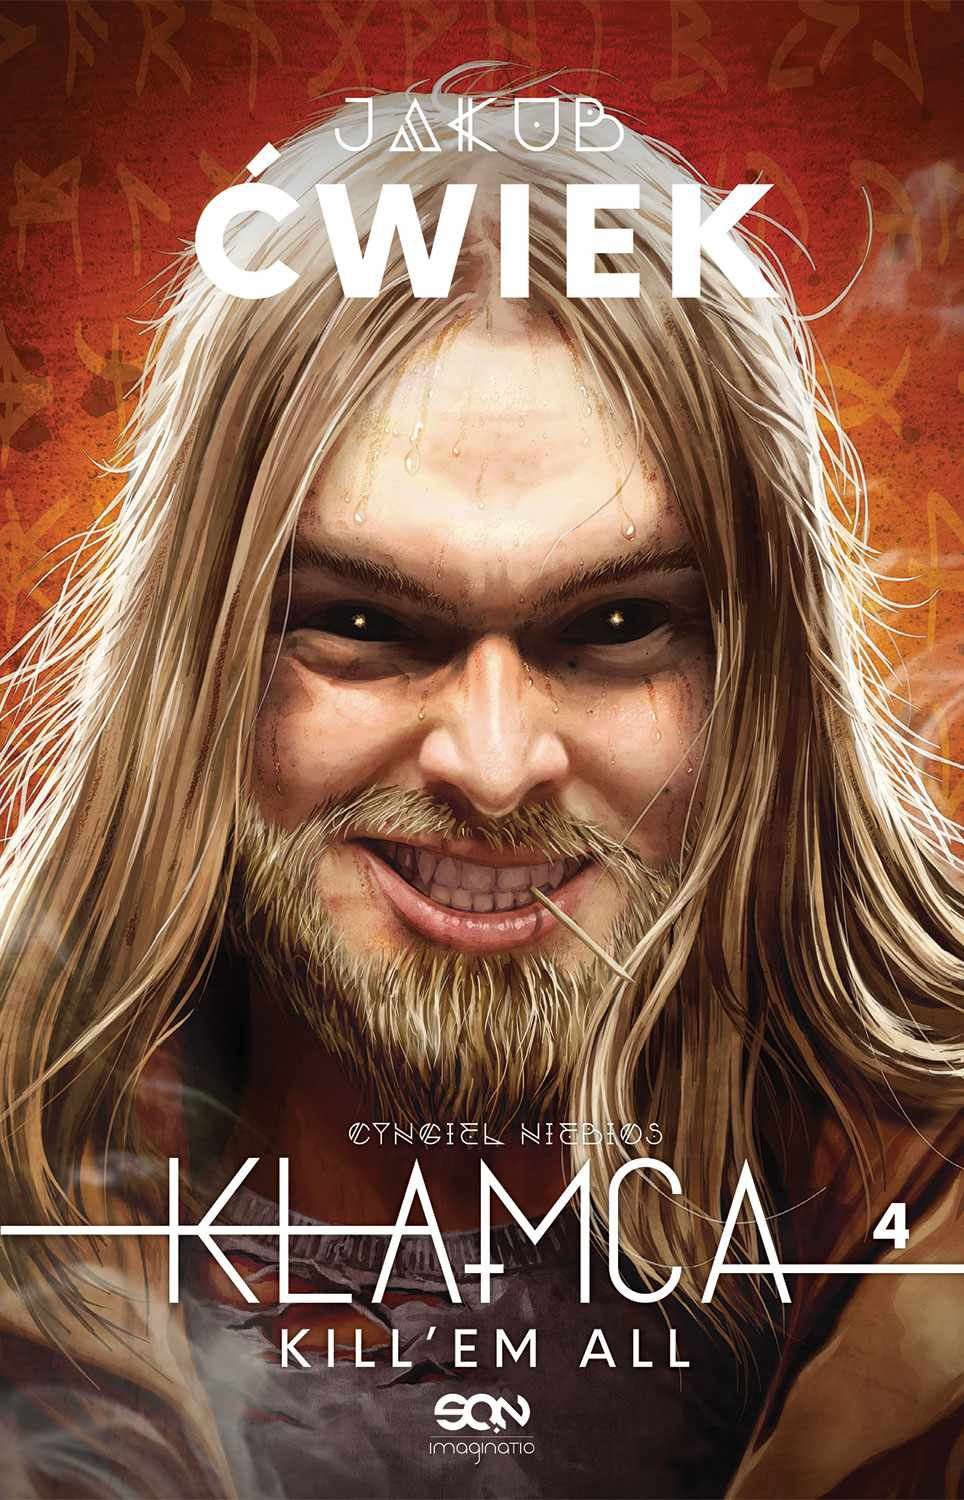 Kłamca 4. Kill'em all - Ebook (Książka EPUB) do pobrania w formacie EPUB